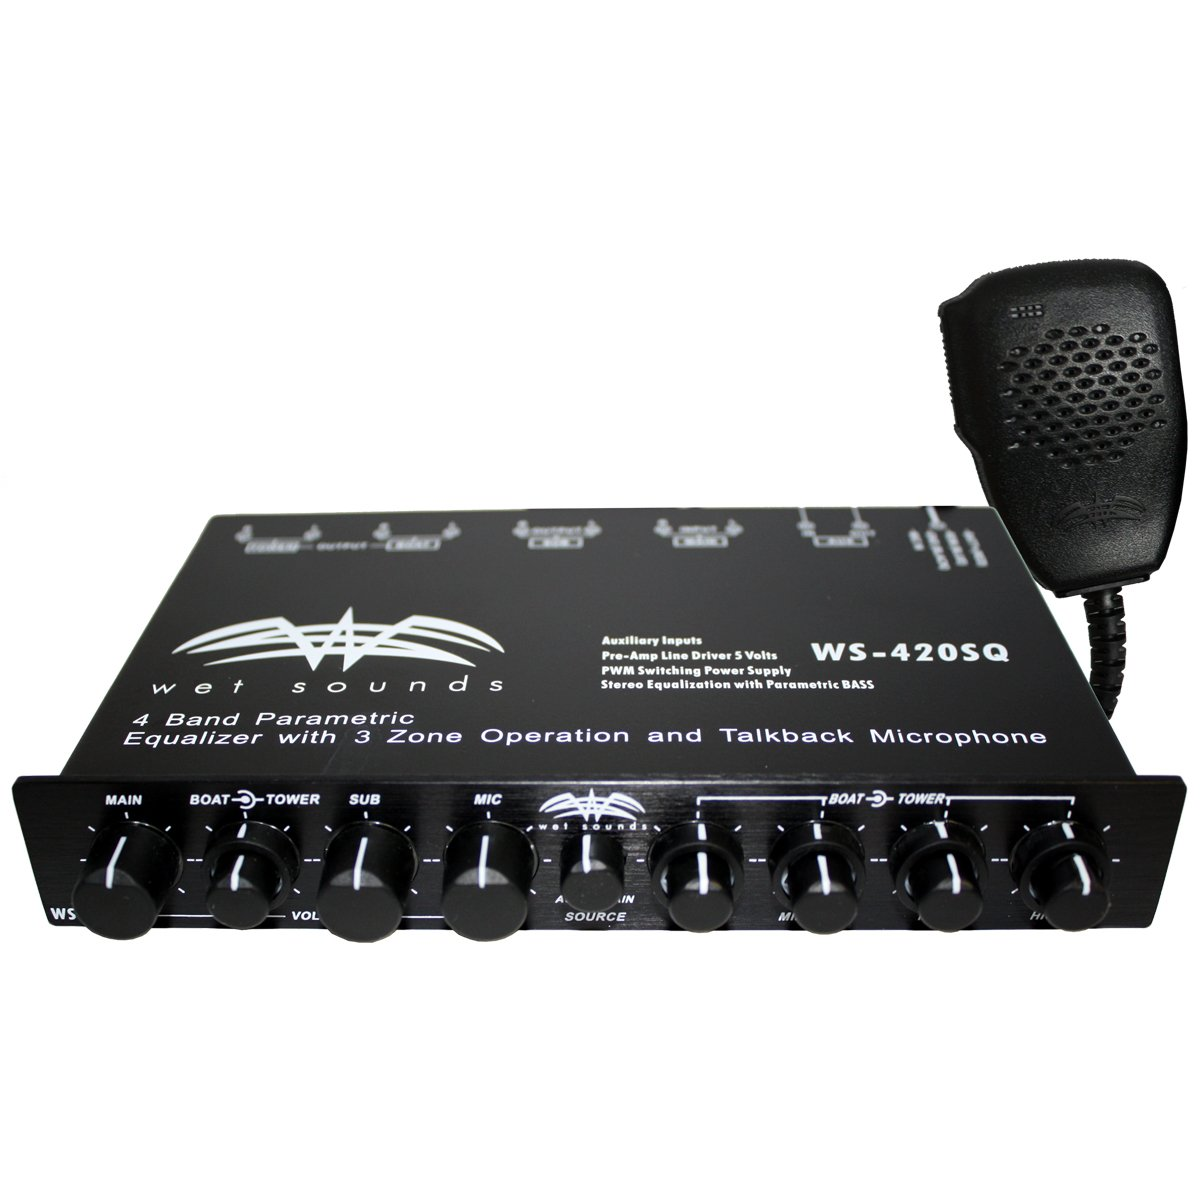 Wet Sounds WS-420 SQ - 4 Band Parametric Equalizer with 3 Zone Operation with Microphone by Wet Sounds